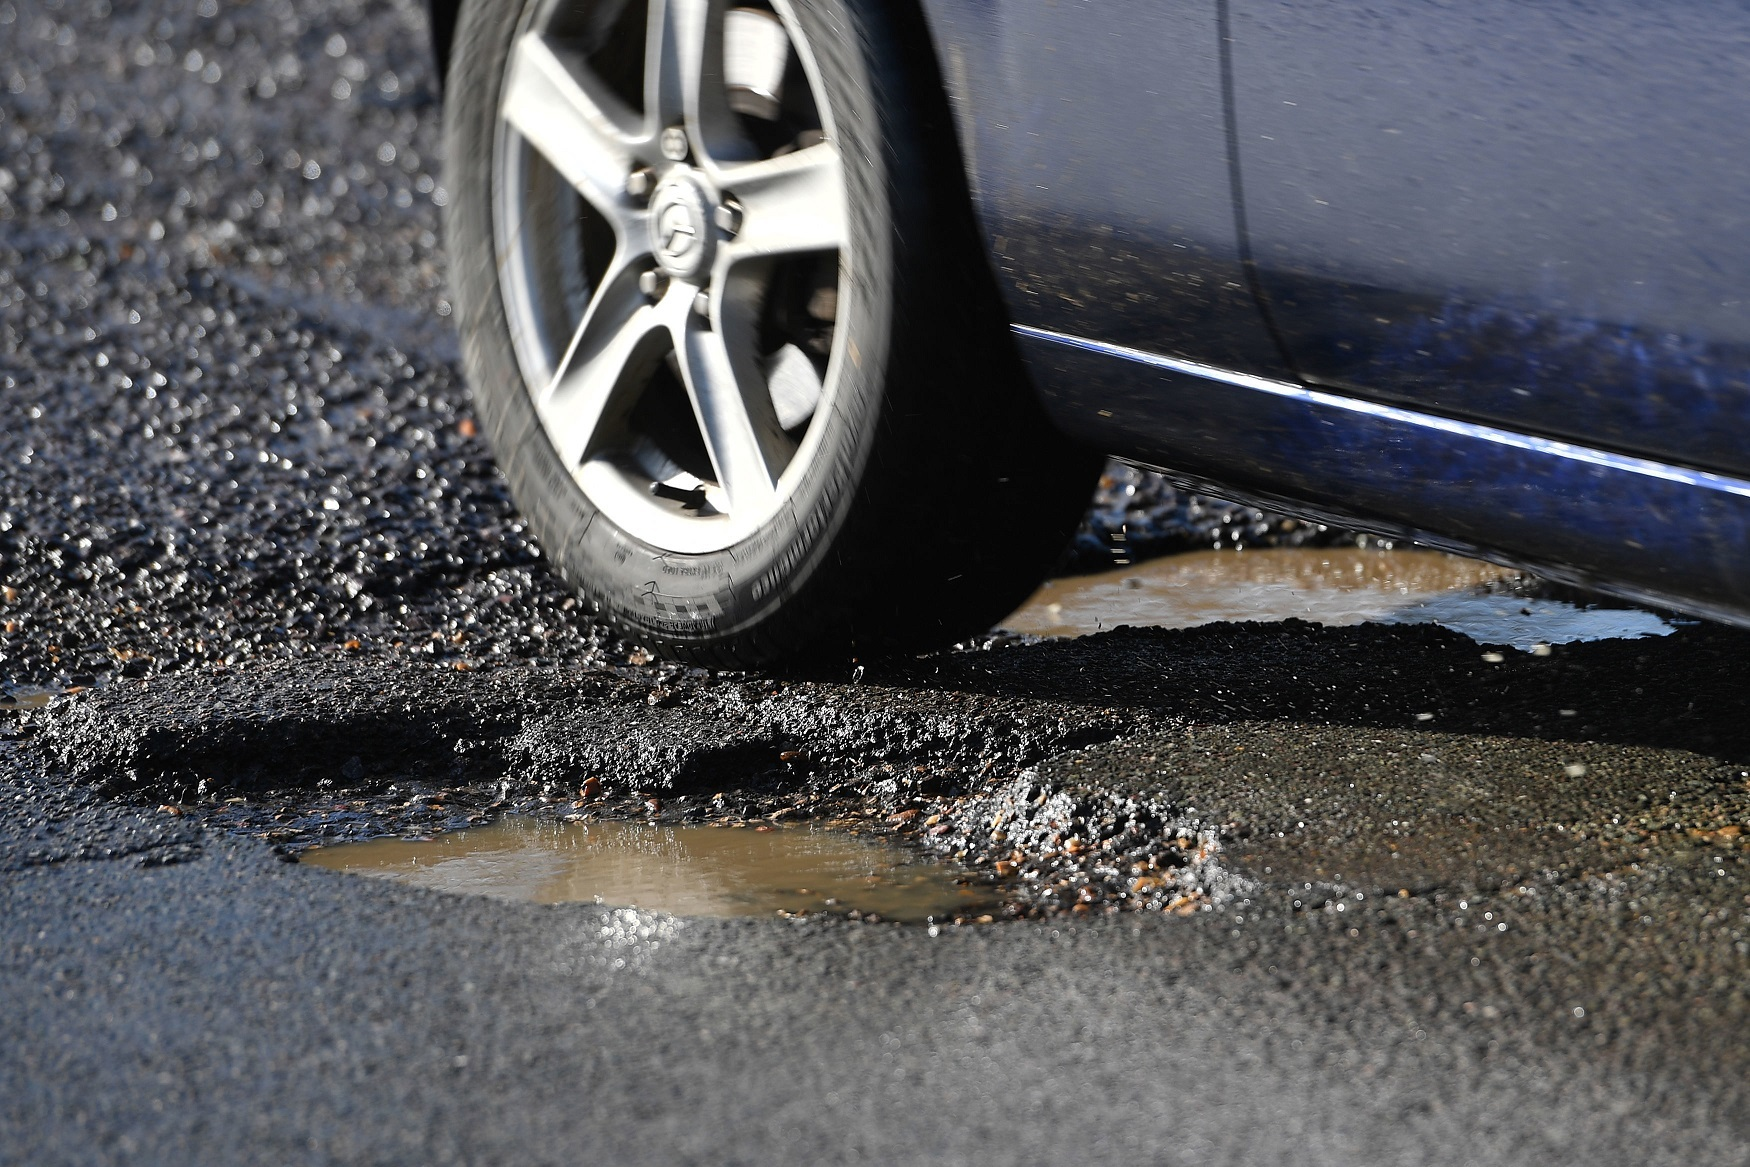 Herefordshire Council has a target of not paying out a single penny for pothole damage